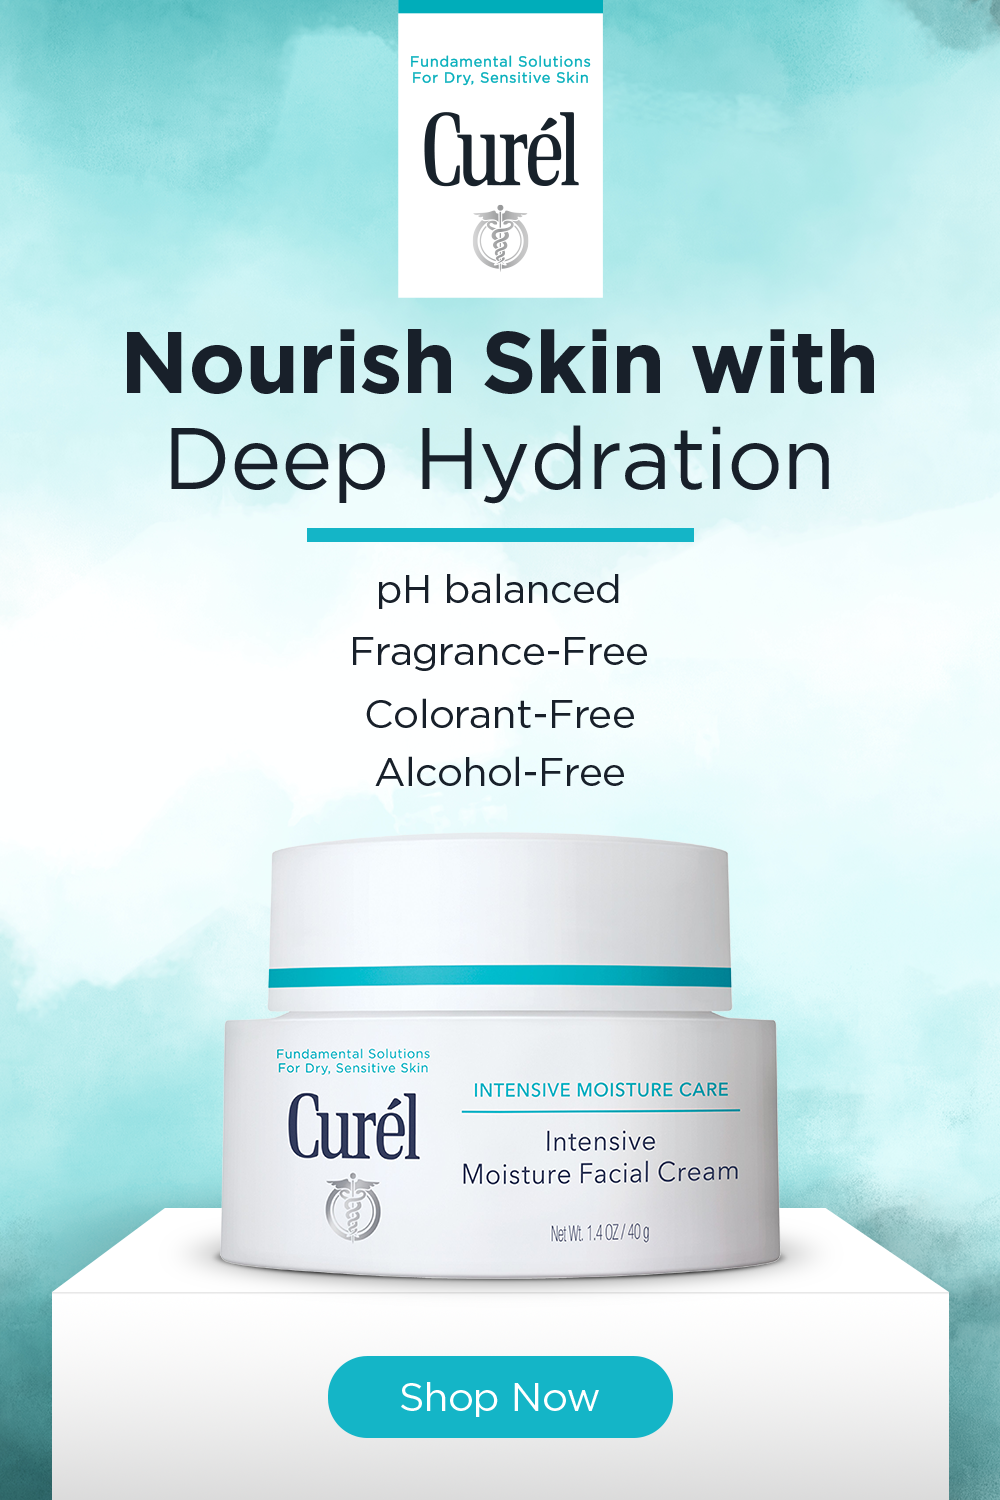 Free of any fragrance, colorants and alcohol, the Curél